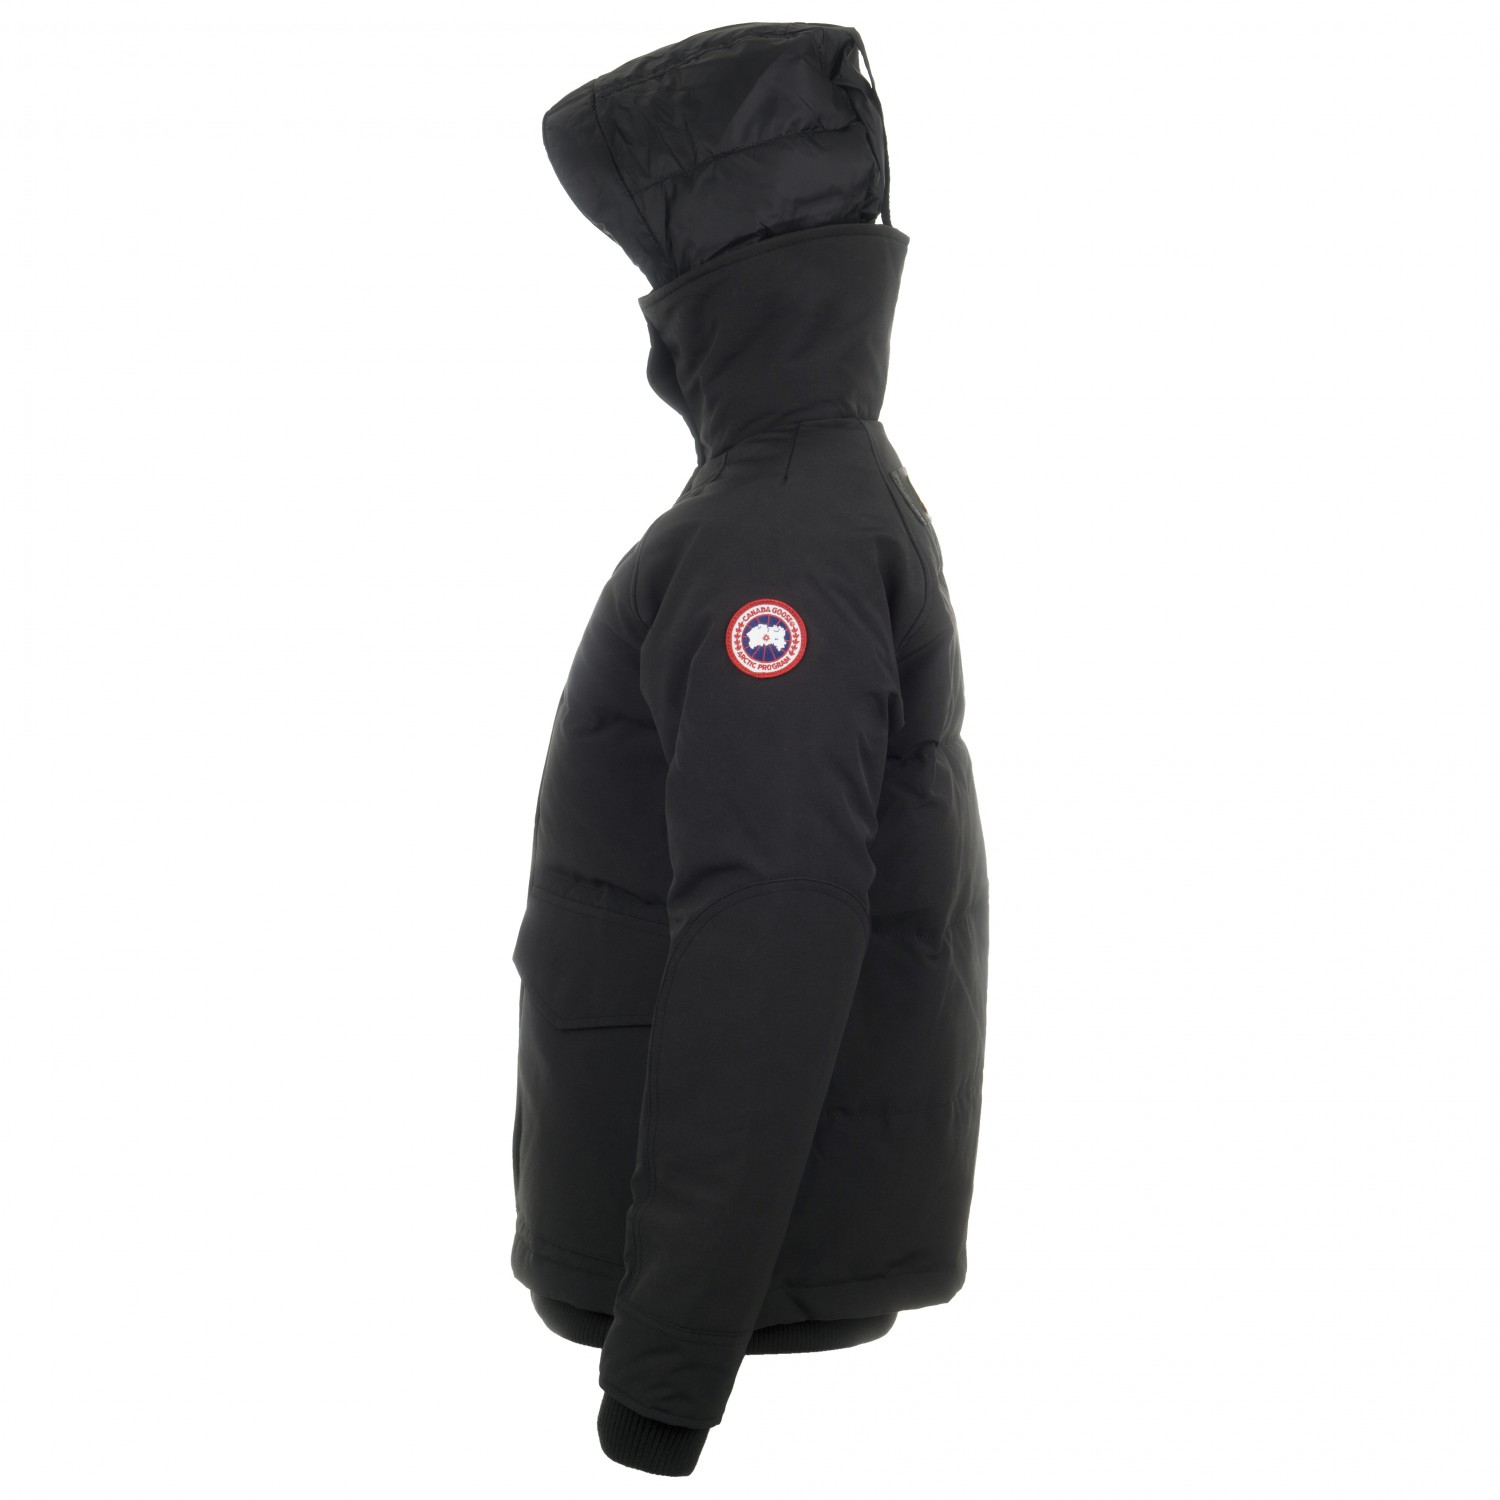 af08651ed Canada Goose - Women's Deep Cove Bomber - Winter jacket - Black | M